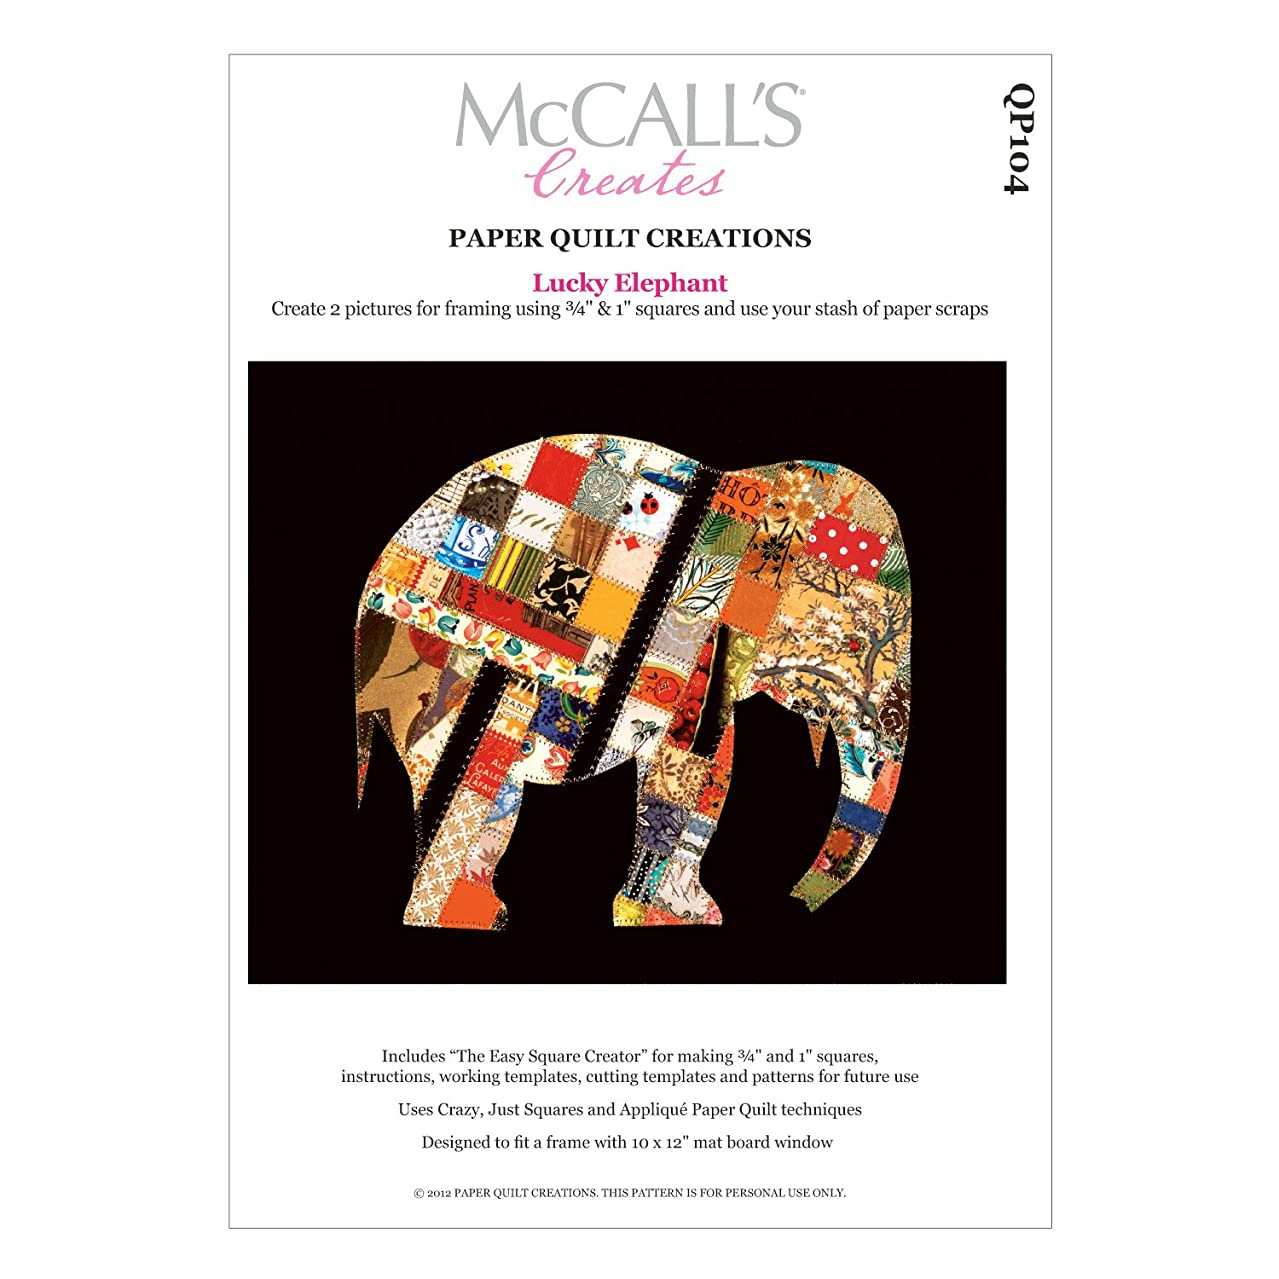 McCall's Creates W10623 Paper Quilt Creations Craft Pattern, Lucky Elephant Quilt Picture